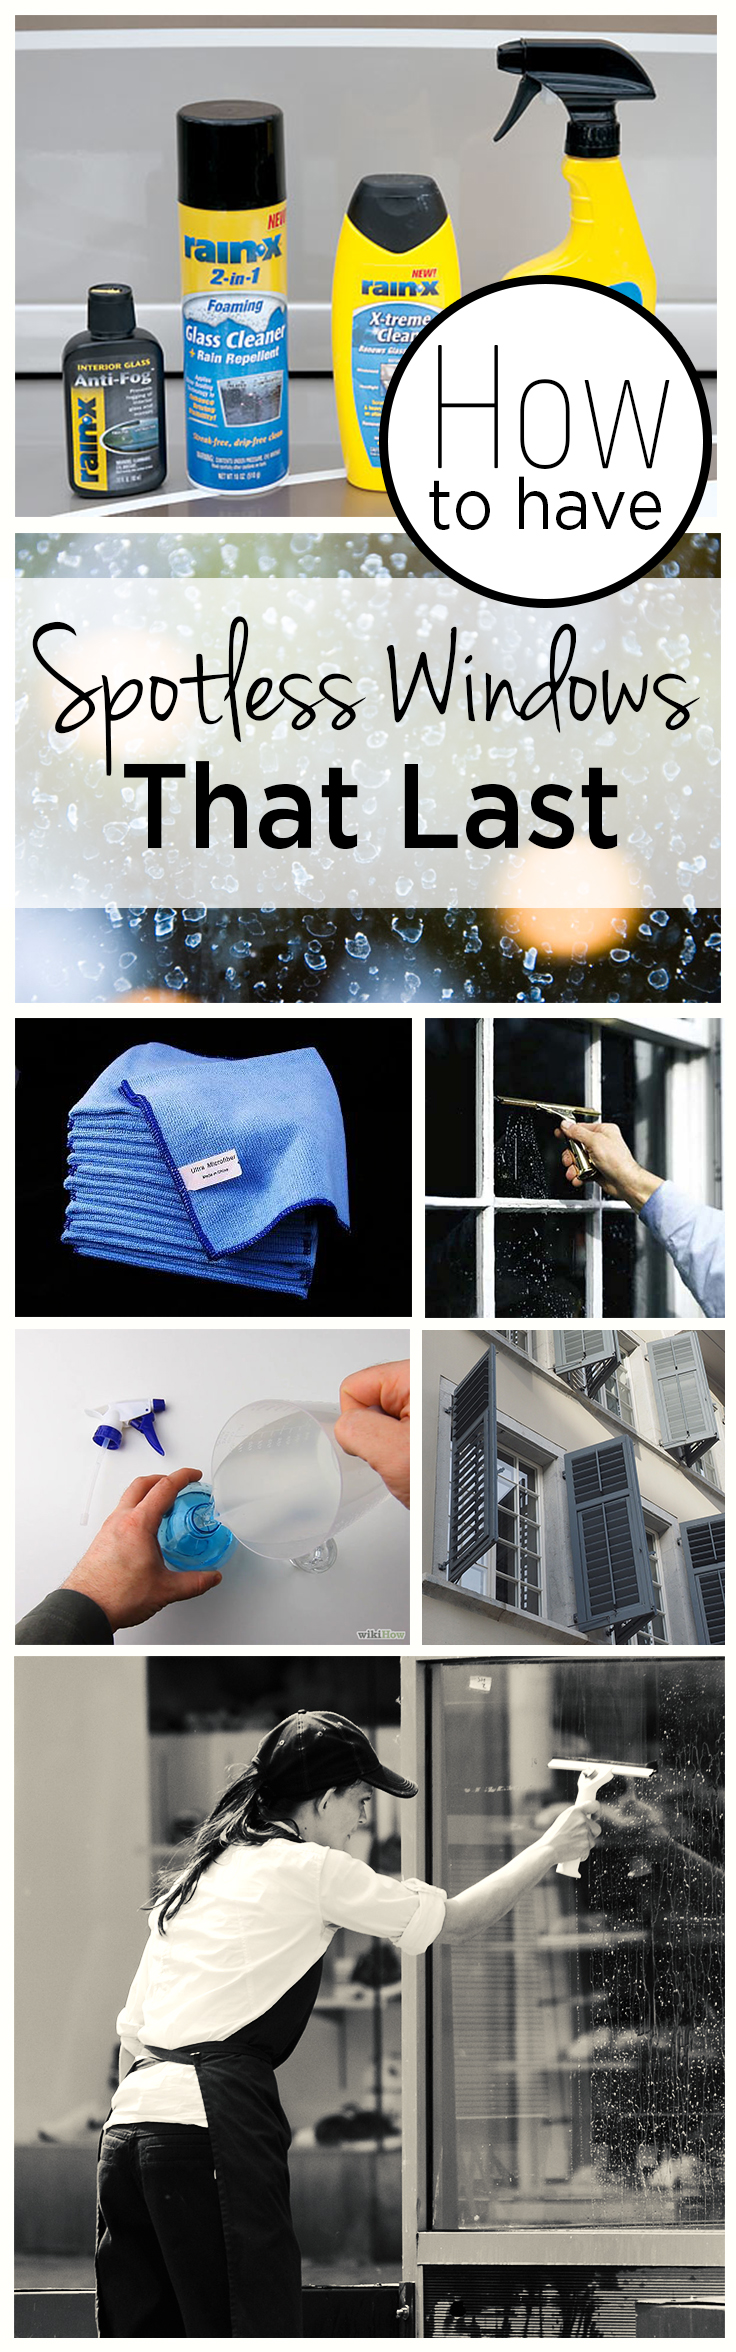 Window cleaning, window cleaning tips, how to clean windows, easy window cleaning, popular pin, cleaning tips, cleaning hacks, window cleaning ideas.